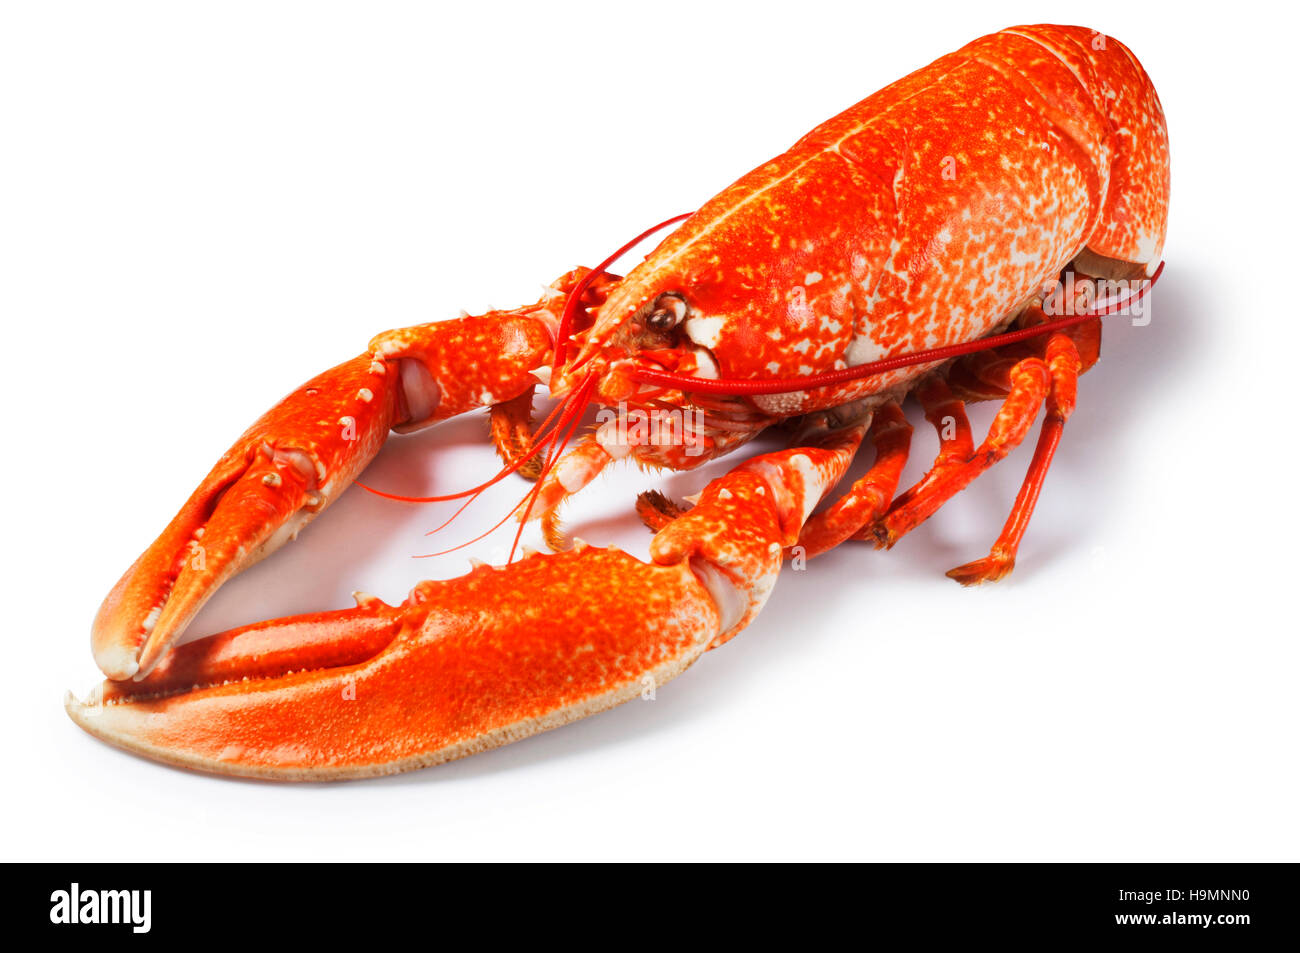 Lobster - John Gollop - Stock Image